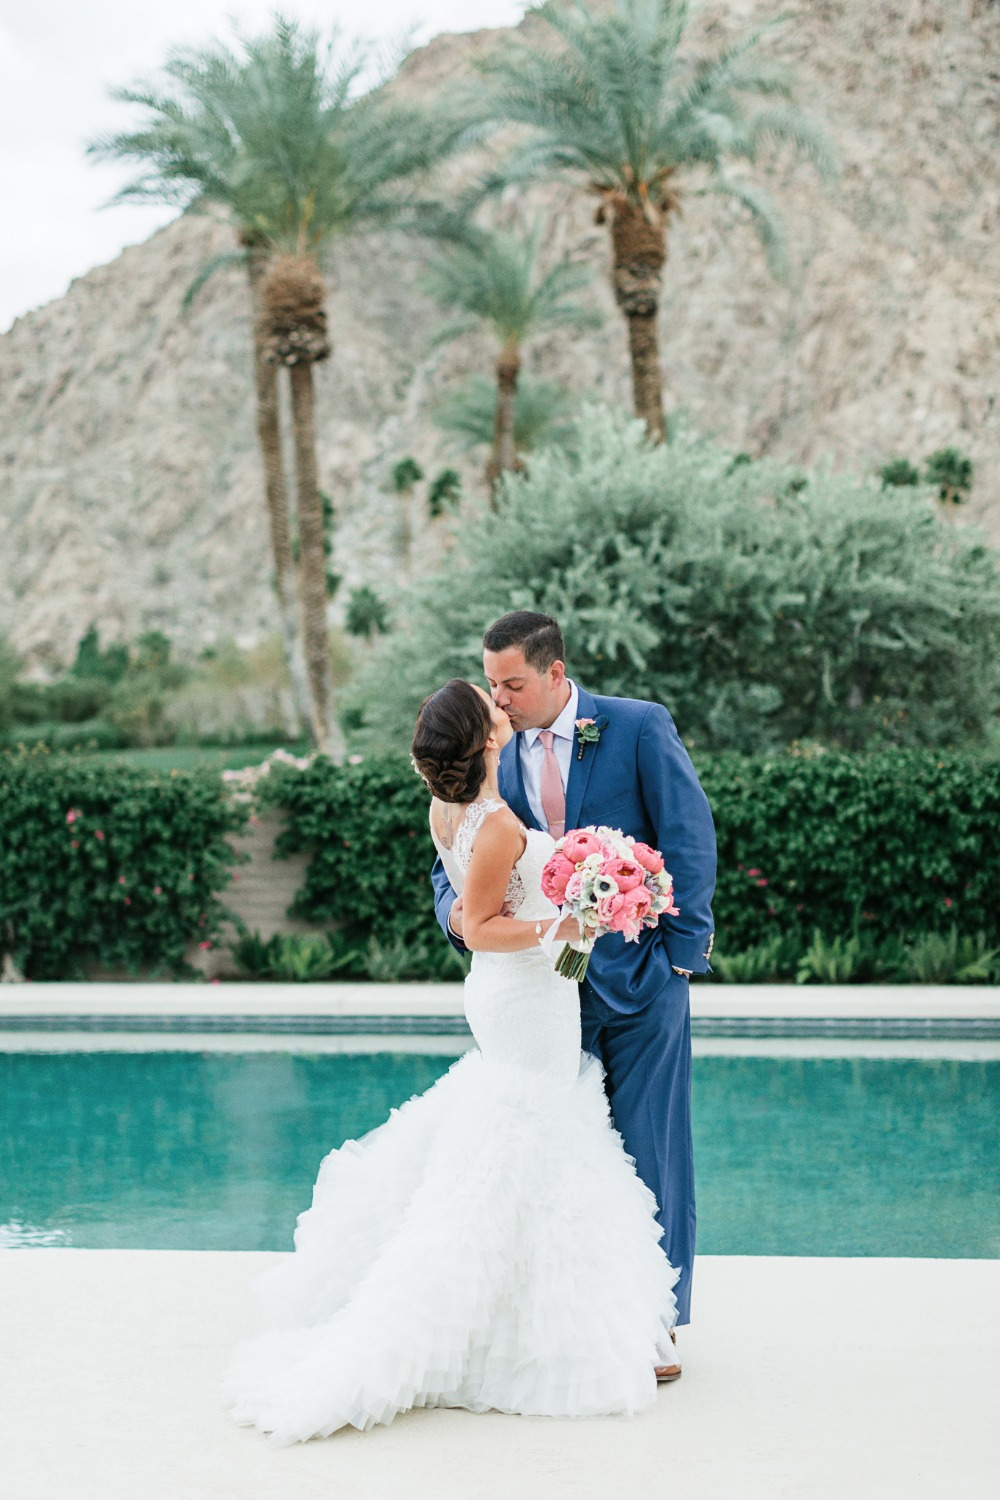 Poolside wedding photo idea